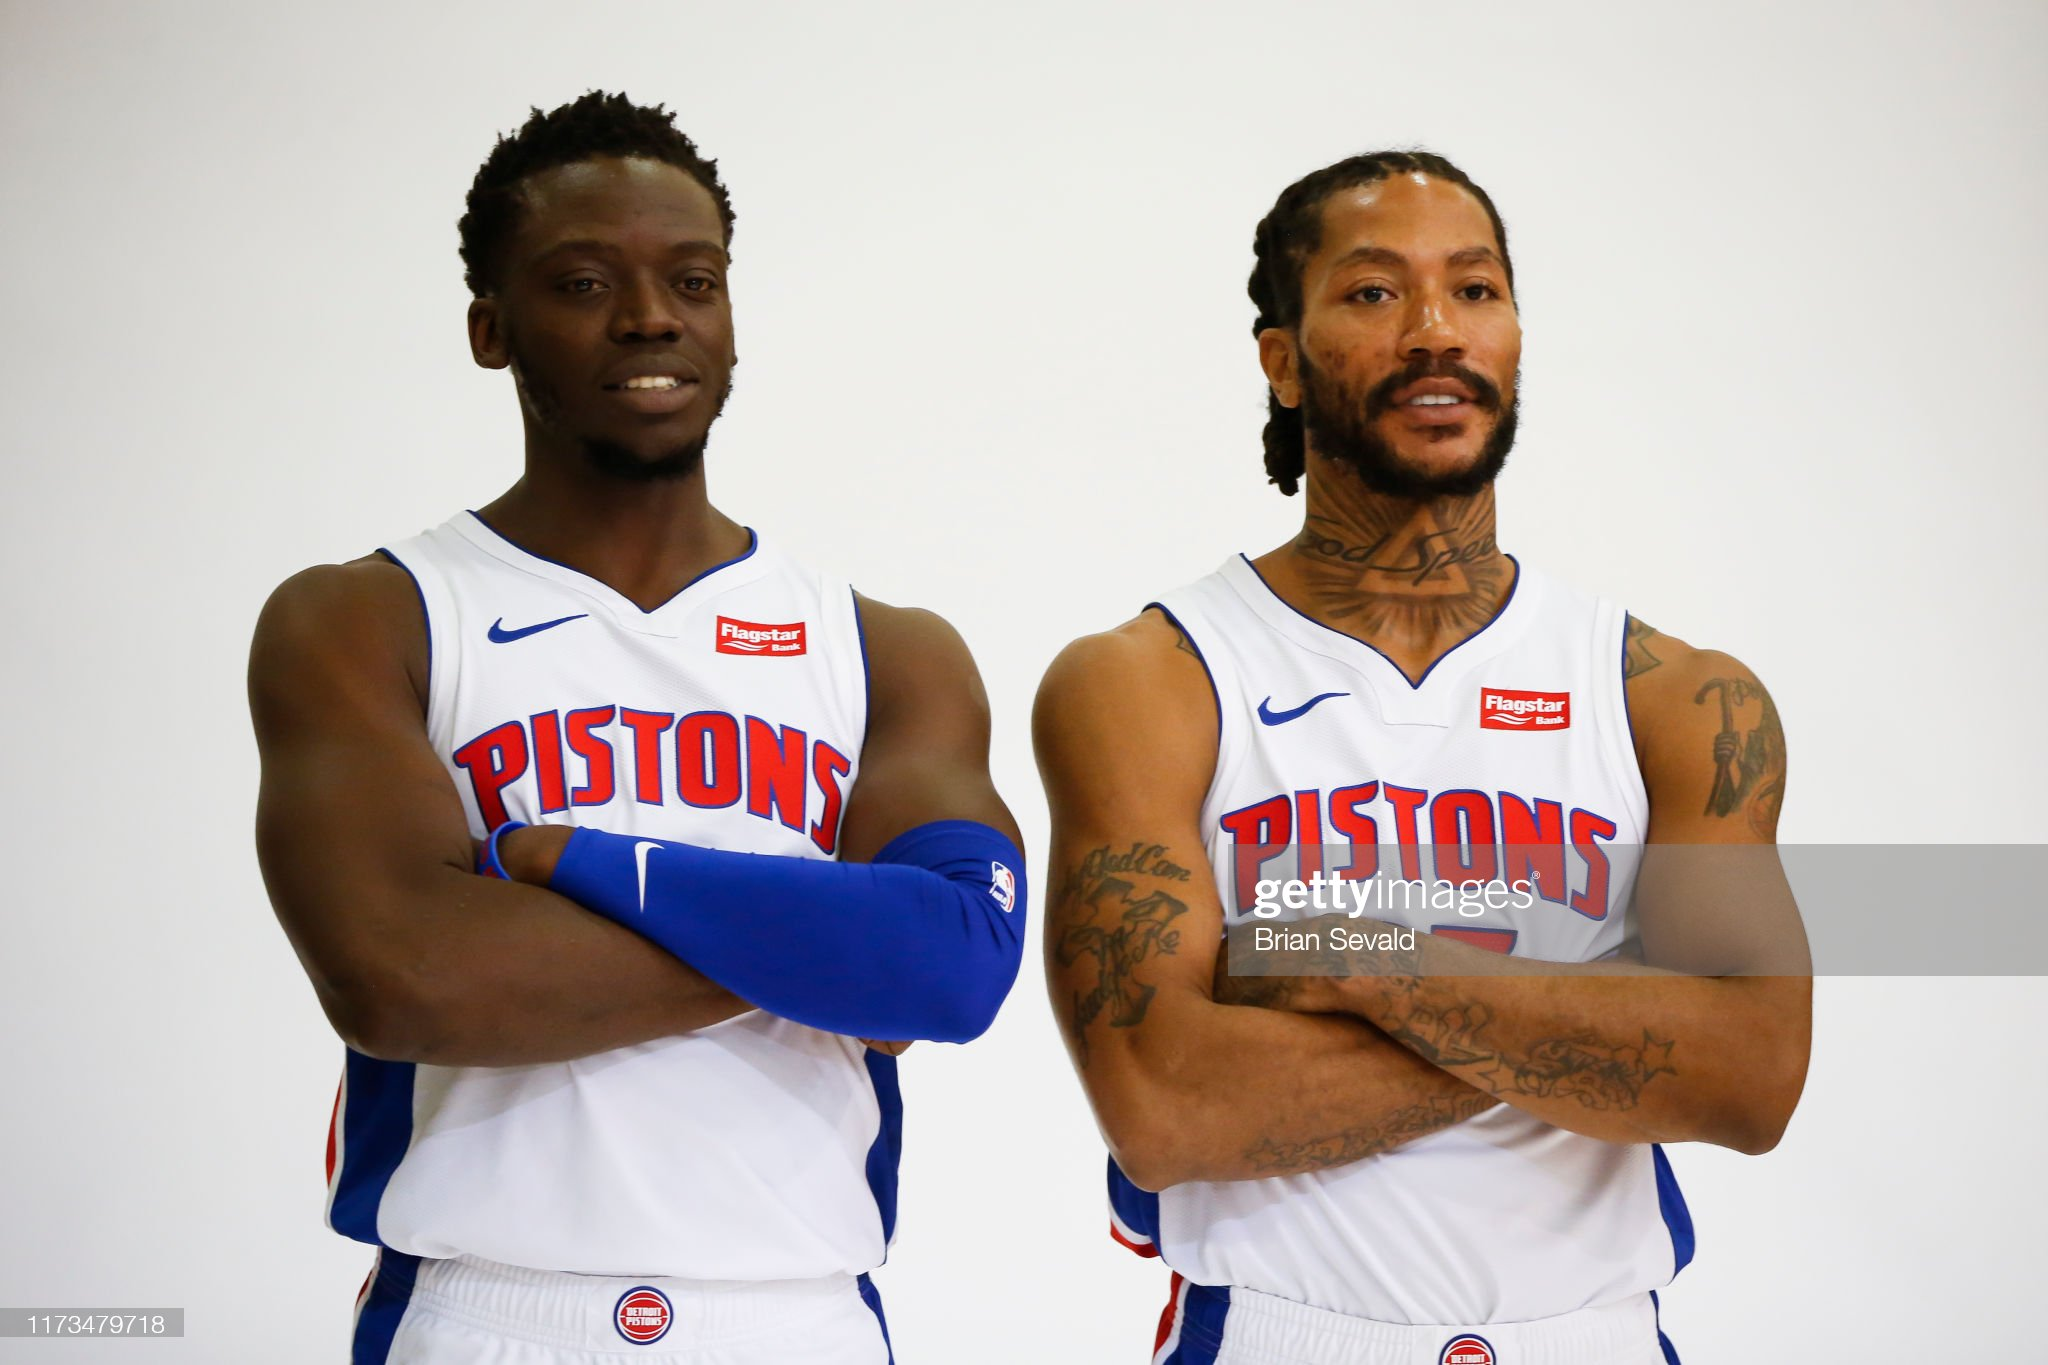 ¿Cuánto mide Derrick Rose? - Altura - Real height Behind-the-scenes-photo-of-reggie-jackson-of-the-detroit-pistons-and-picture-id1173479718?s=2048x2048